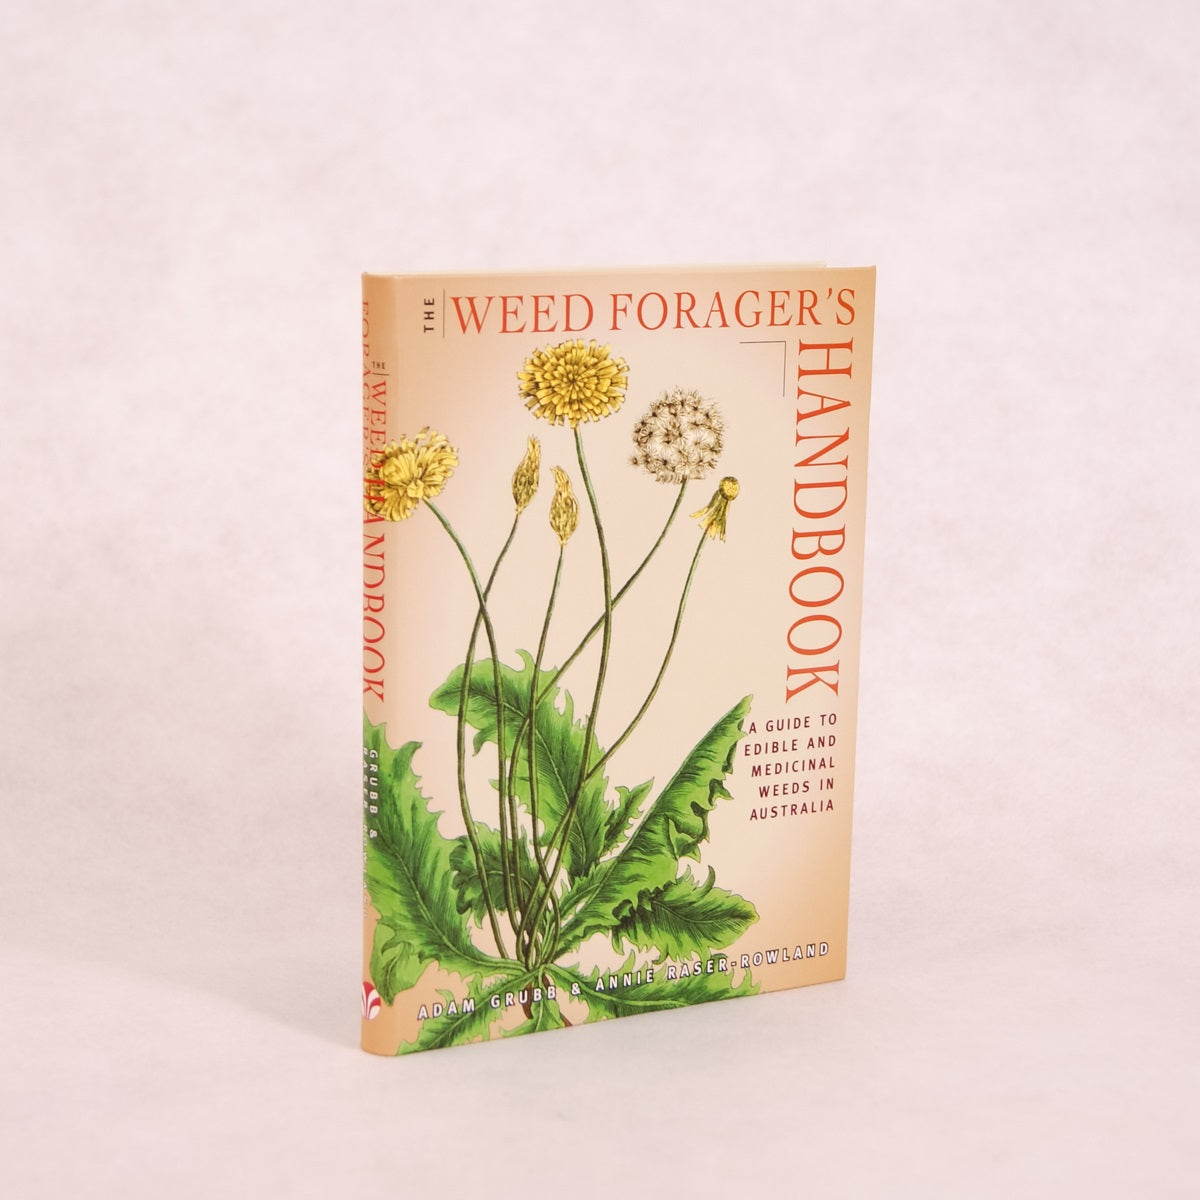 The Weed Forager's Handbook | By Adam Grubb & Annie Raser-Rowland - Book - Throw Some Seeds - Australian gardening gifts and eco products online!